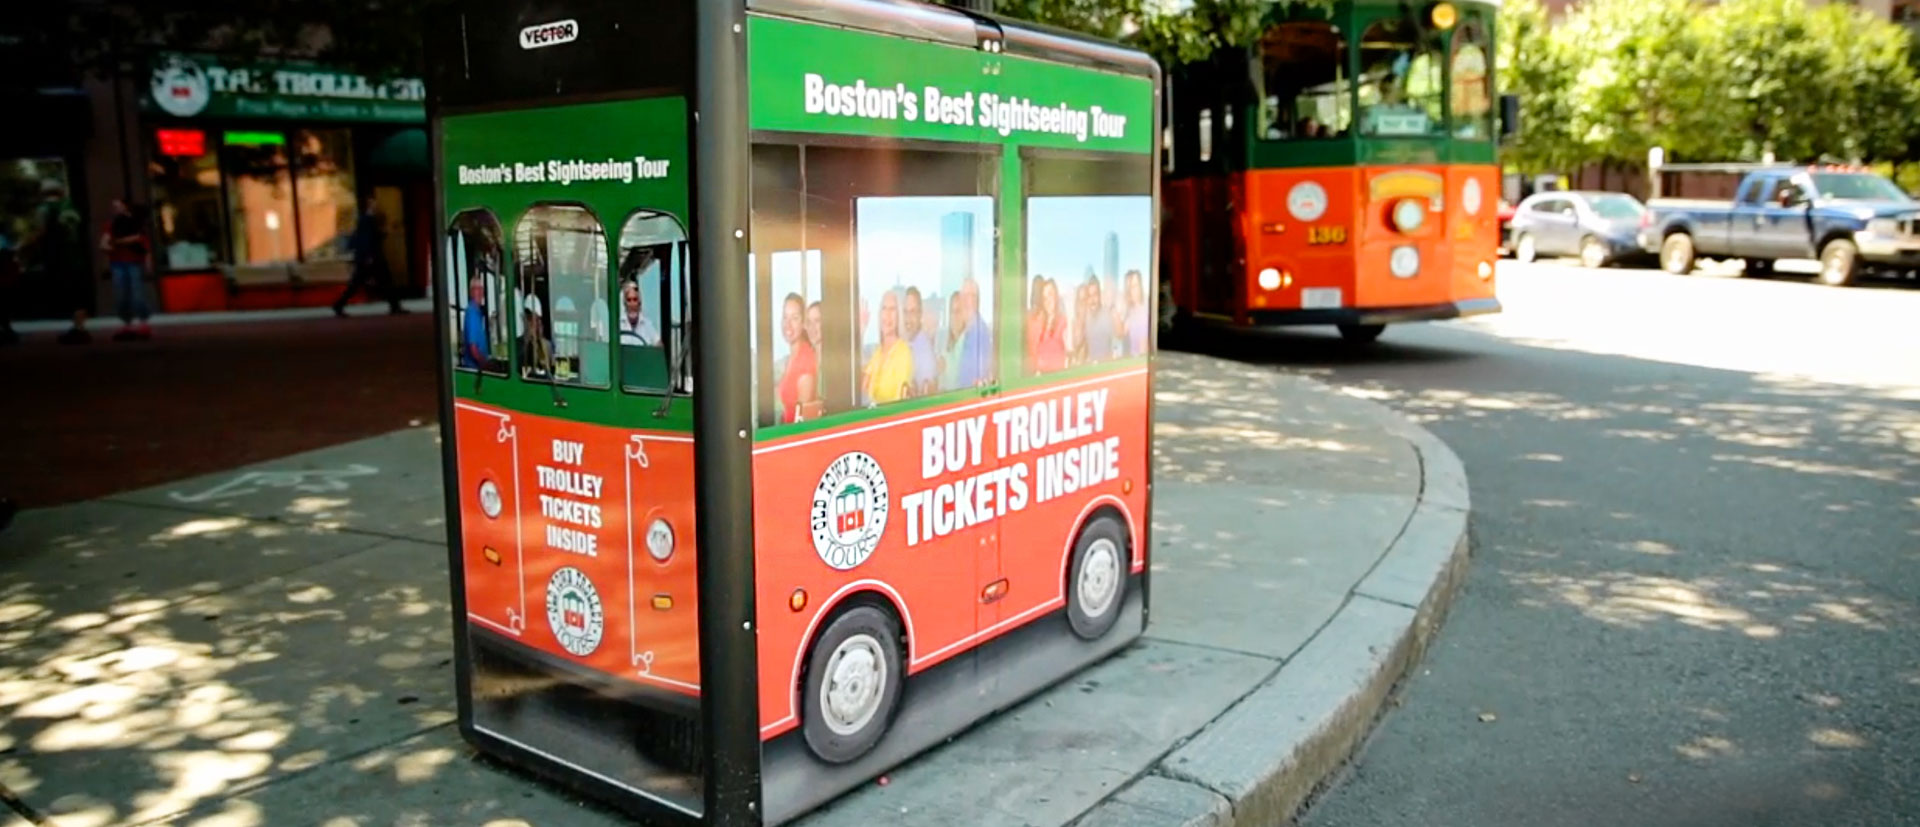 Image of Boston Recycling Bin Graphics For Outdoor Advertising Campaign for Old Town Trolley